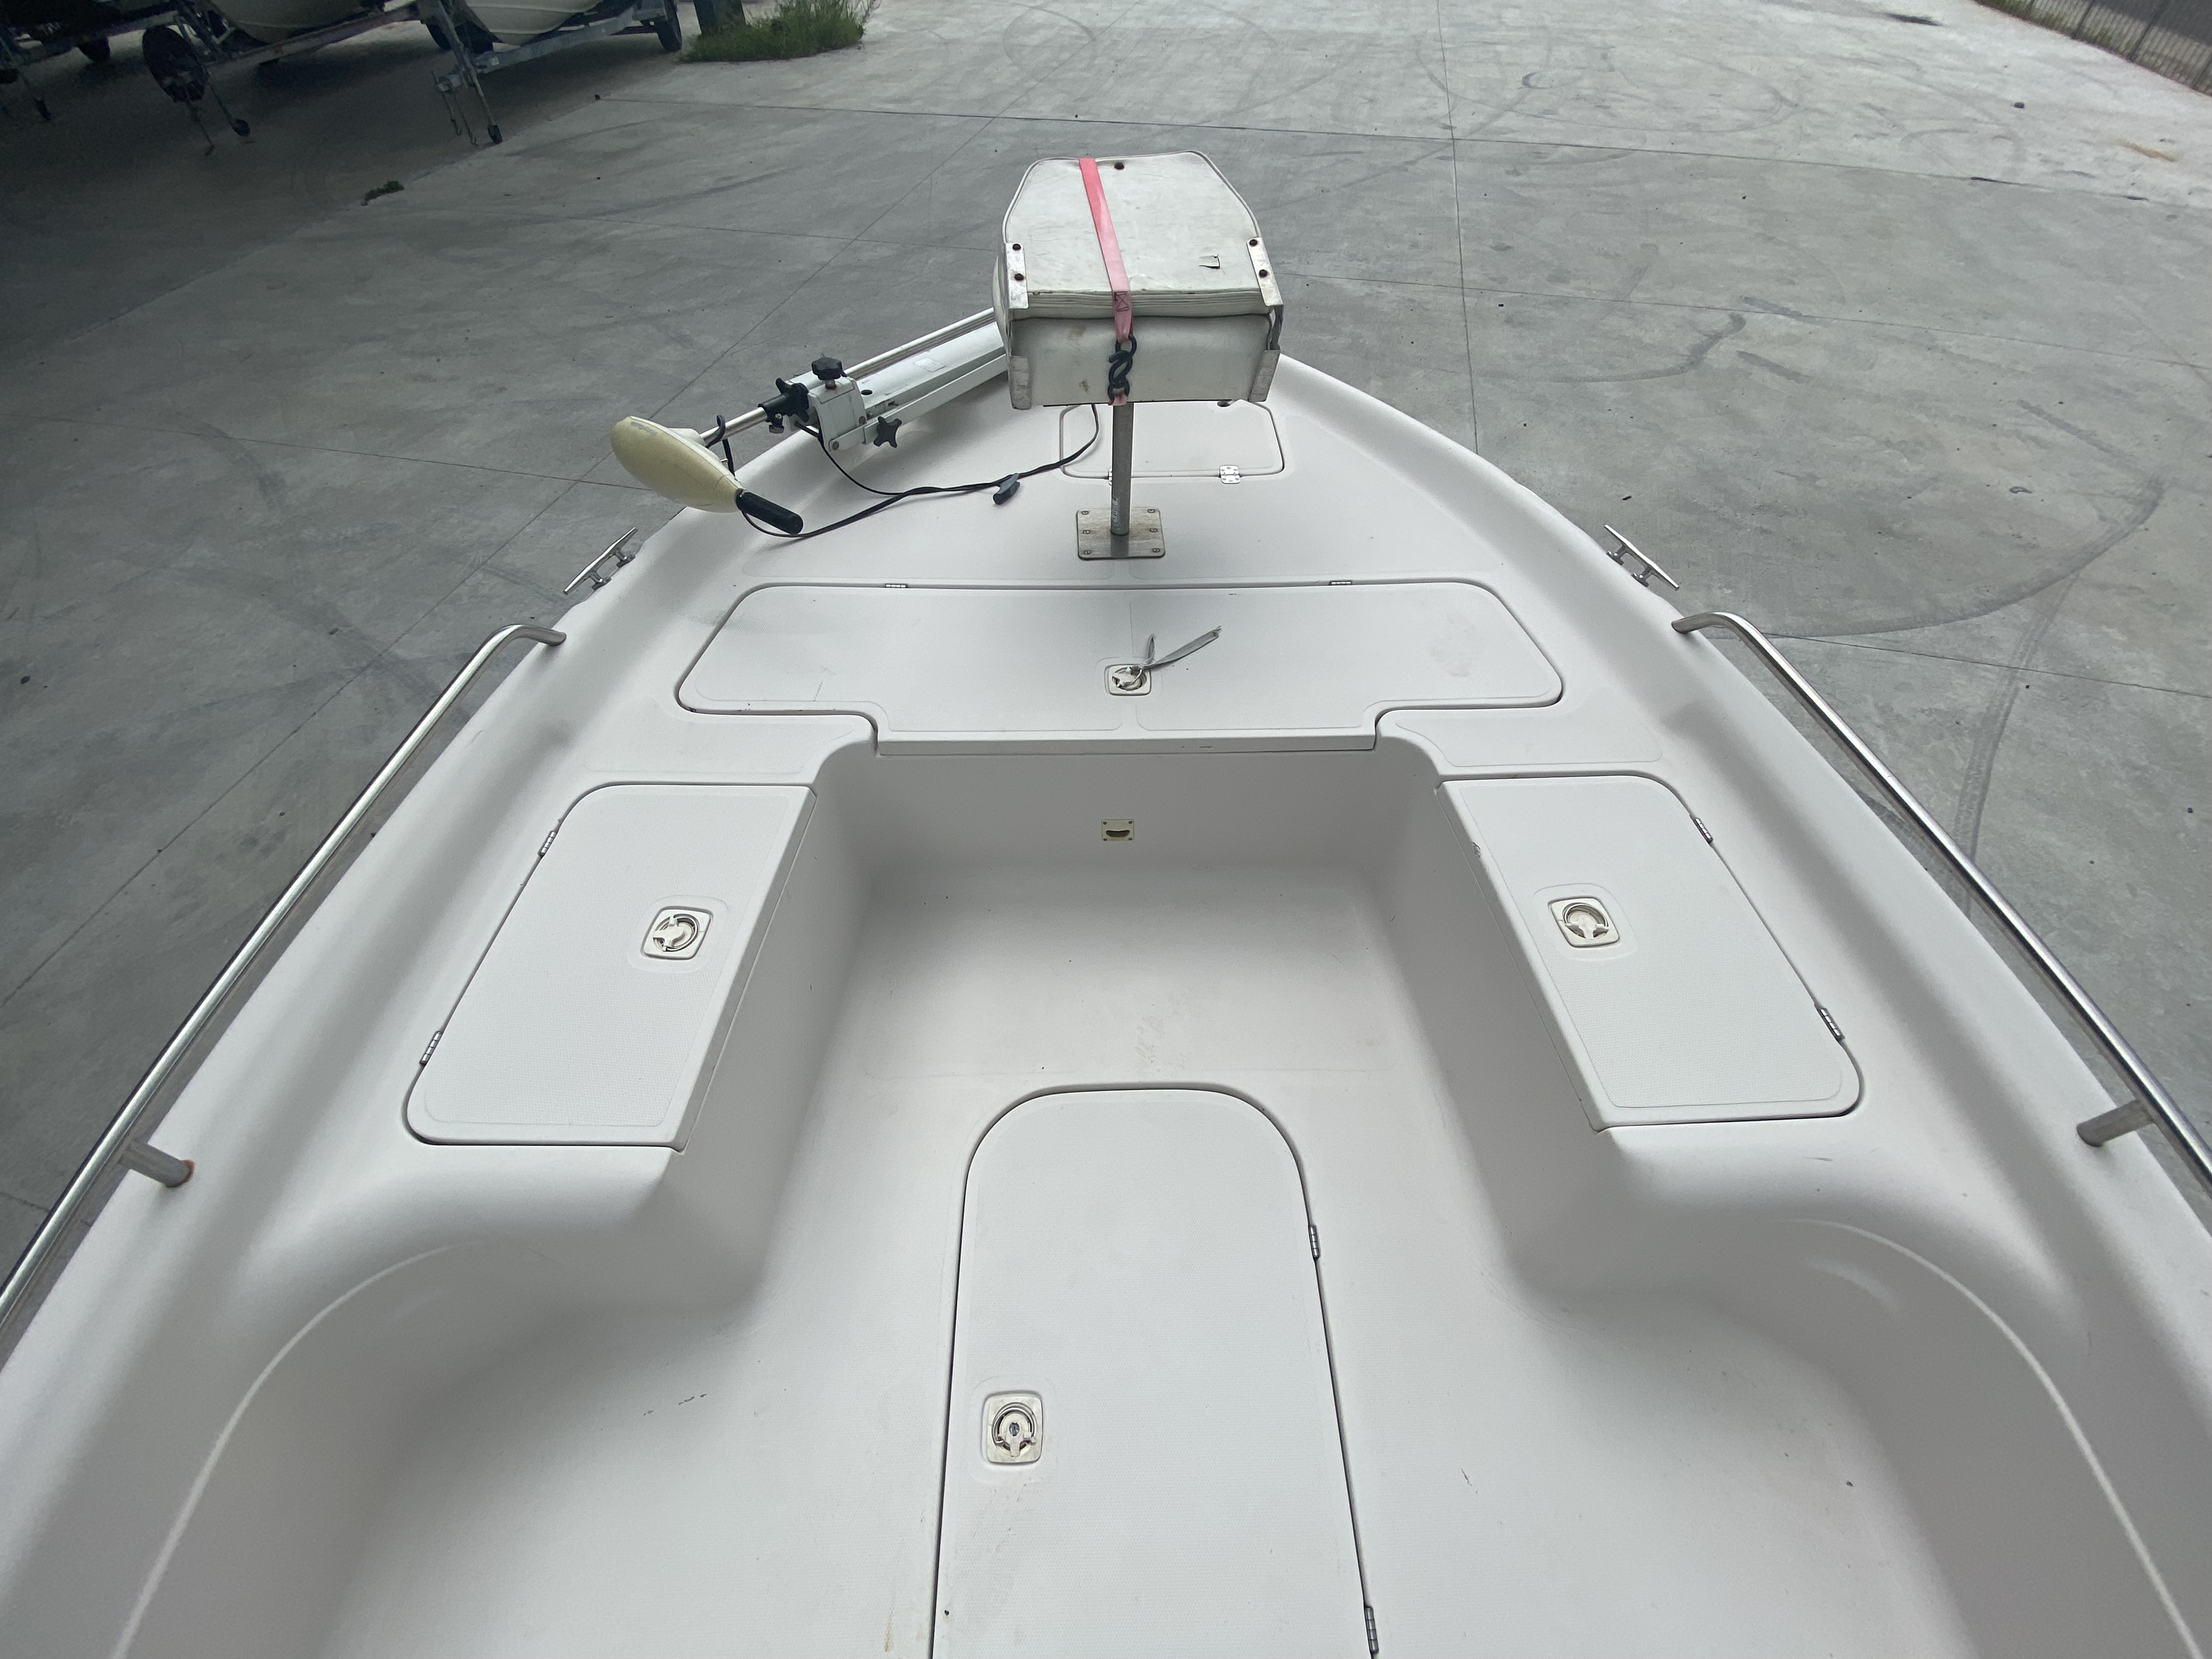 2001 Fish Master boat for sale, model of the boat is 23cc Travis Edition & Image # 6 of 11